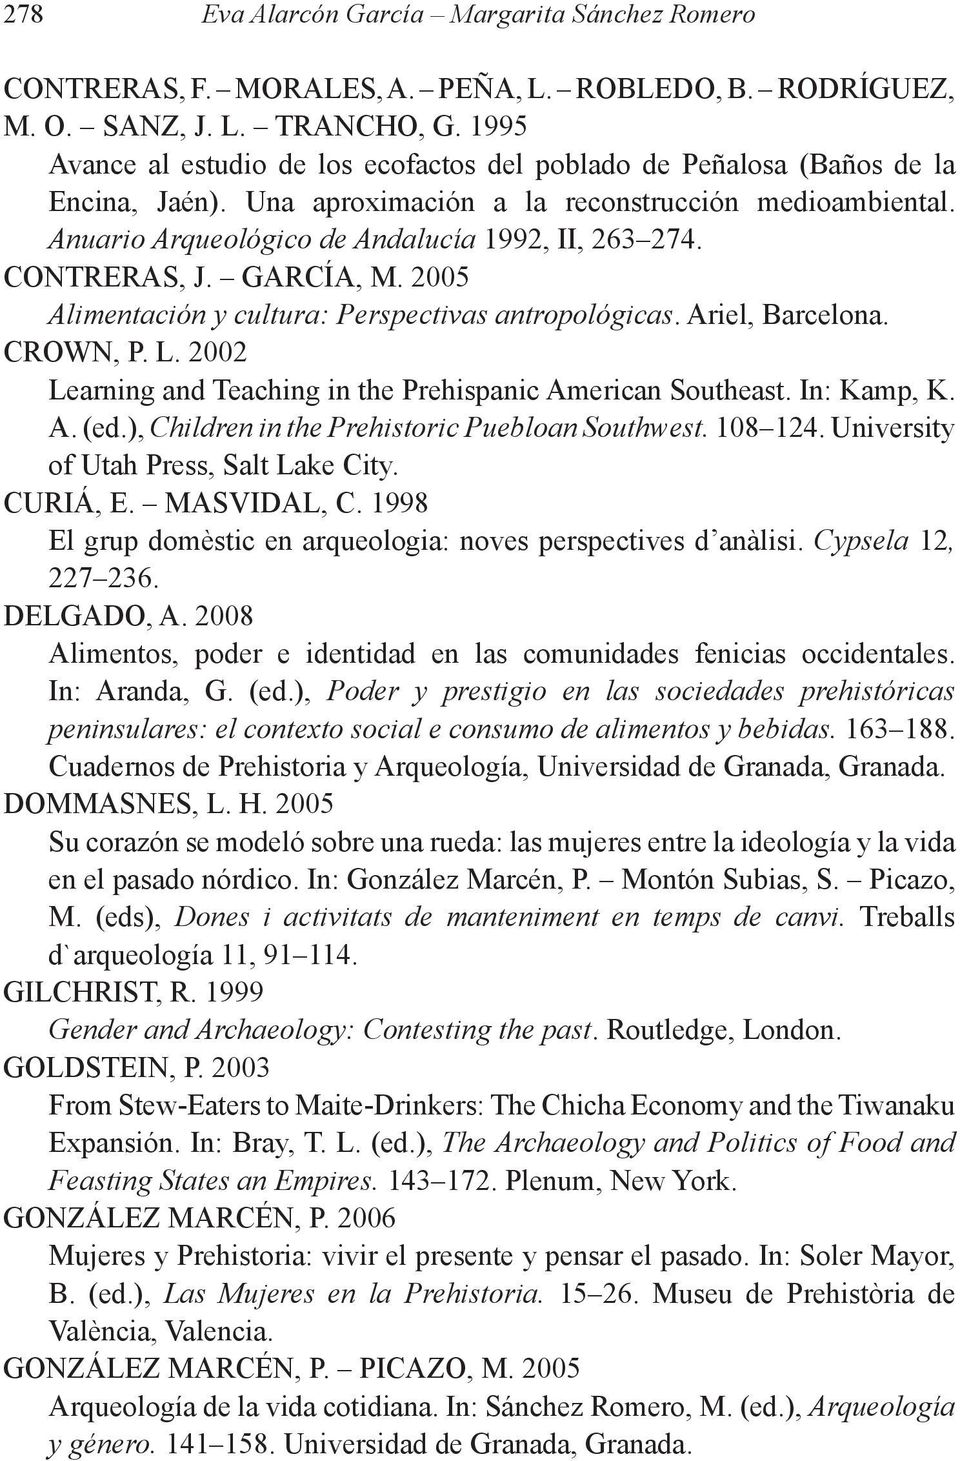 CONTRERAS, J. GARCÍA, M. 2005 Alimentación y cultura: Perspectivas antropológicas. Ariel, Barcelona. CROWN, P. L. 2002 Learning and Teaching in the Prehispanic American Southeast. In: Kamp, K. A. (ed.